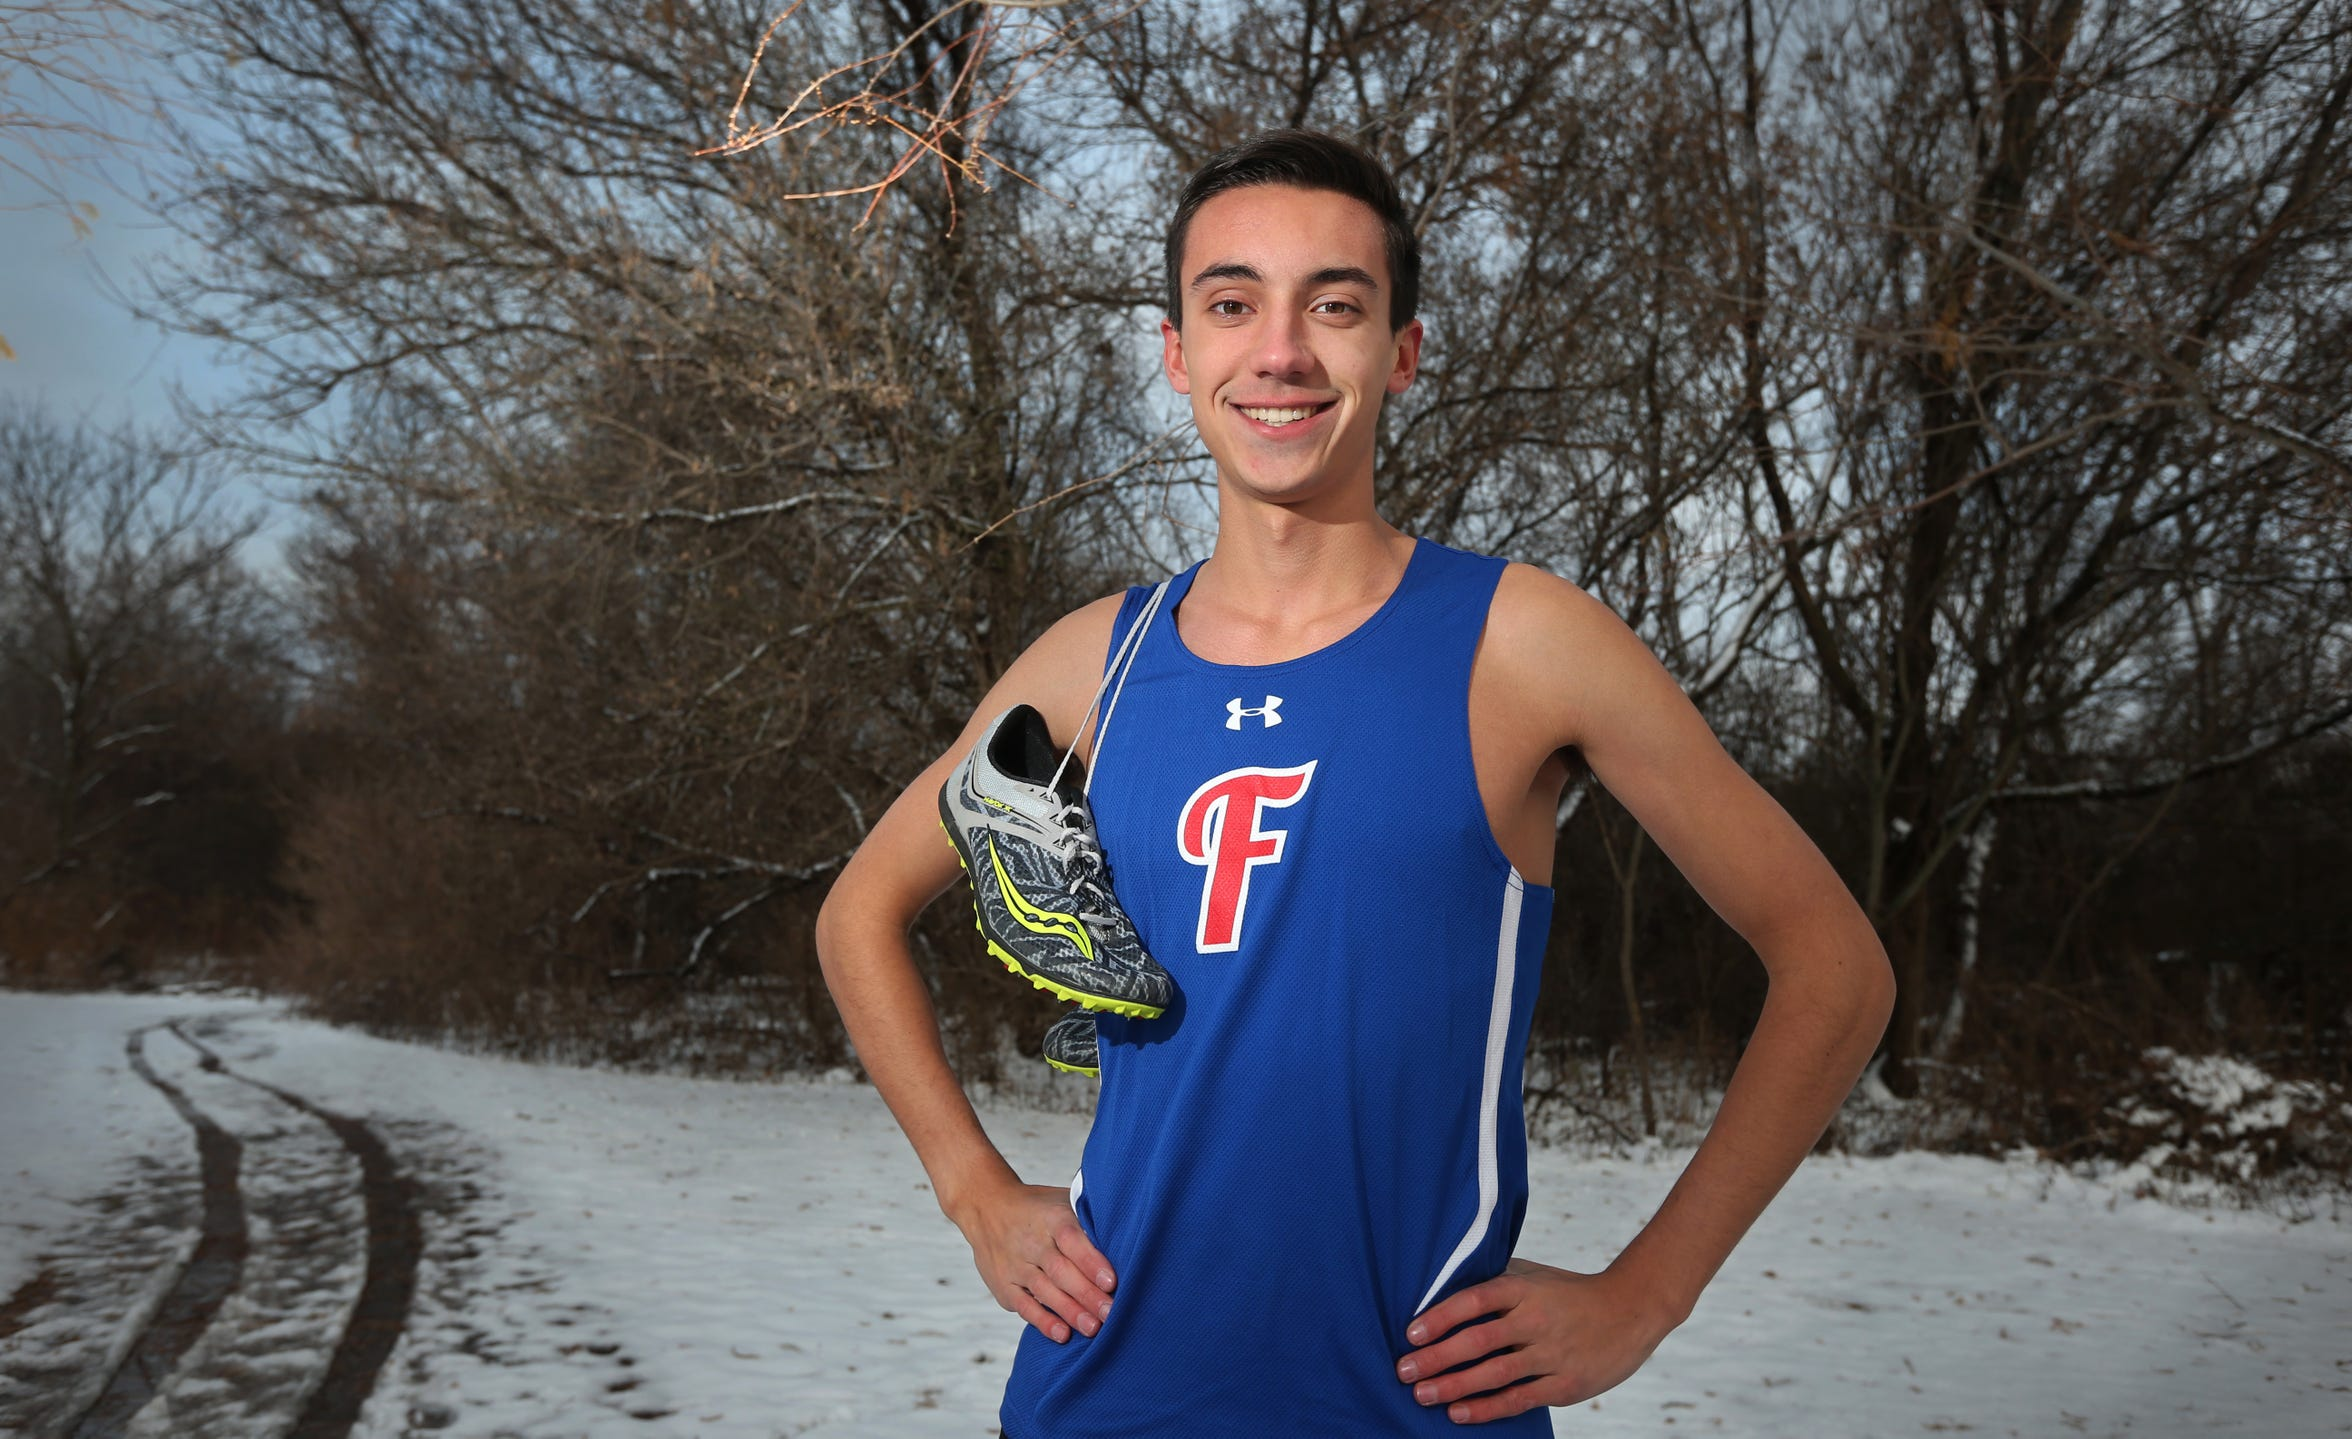 Sean Henretta, senior at Fairport High School, is the All Greater Rochester boys cross country athlete of the year for 2018.  Henretta is seen on the Fairport varsity cross country course in Center Park in Fairport.